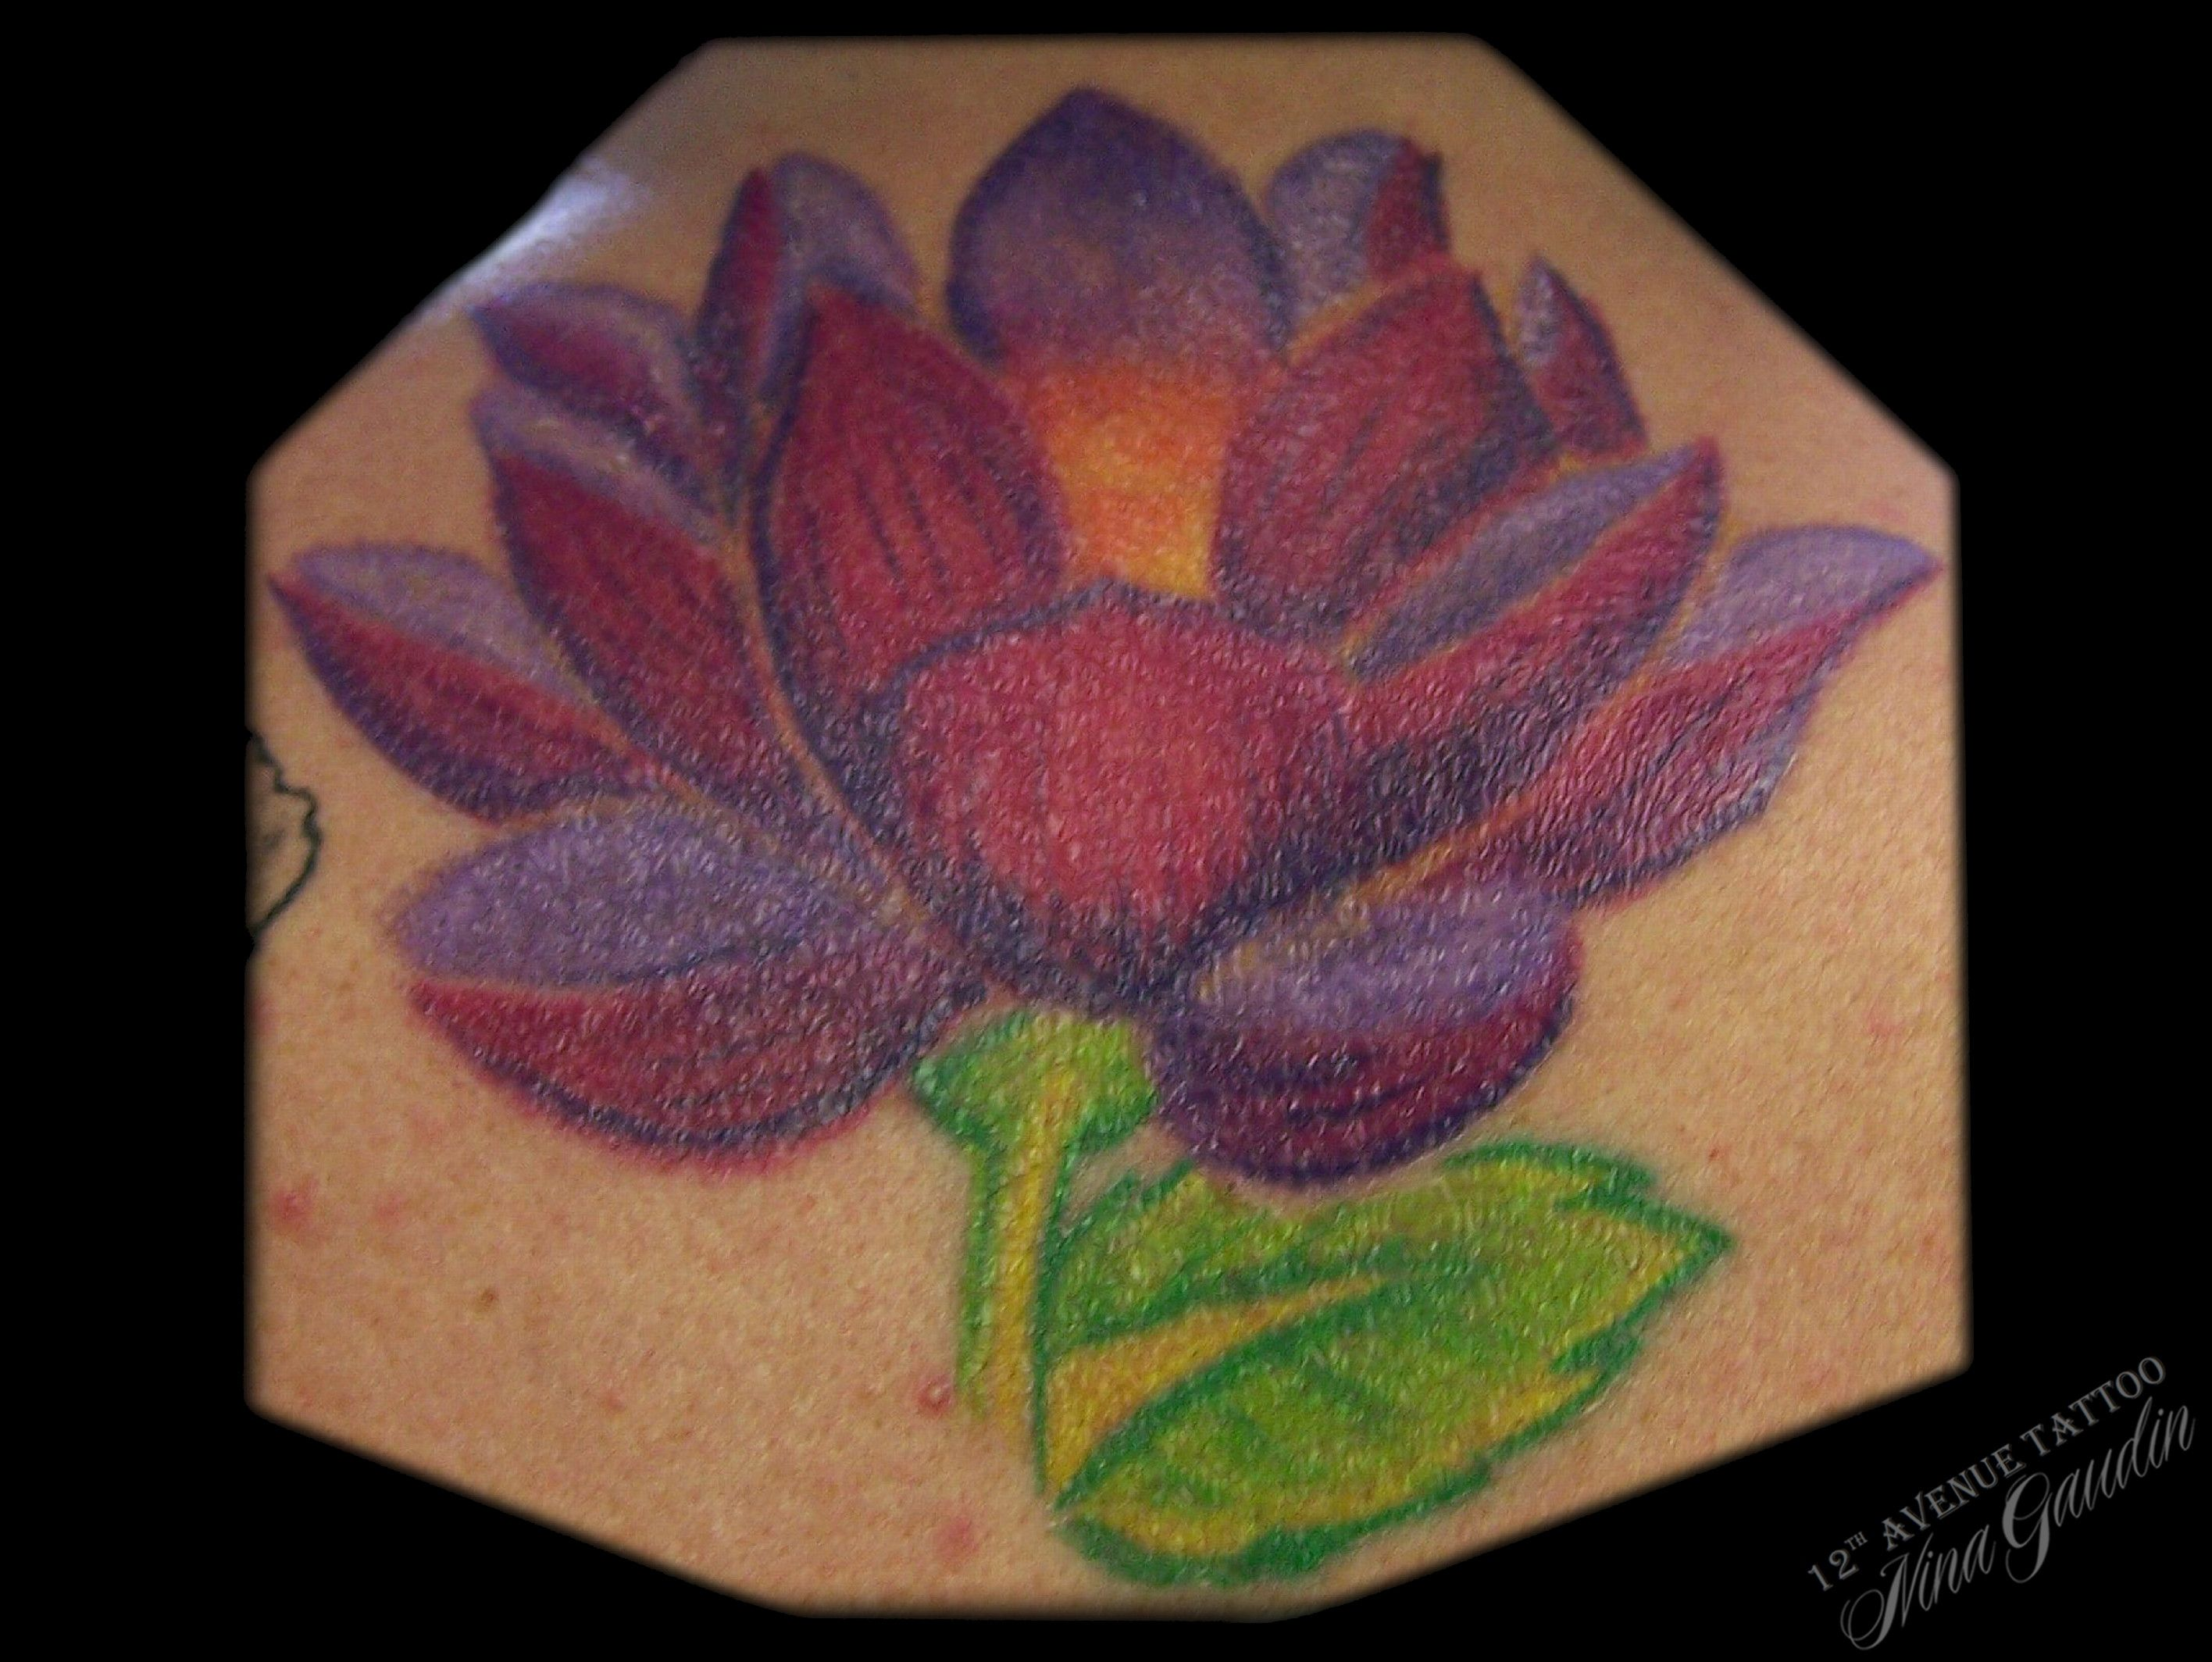 Lotus flower color back tattoo by nina gaudin of 12th avenue lotus flower color back tattoo by nina gaudin of 12th avenue tattoo in nampa izmirmasajfo Images